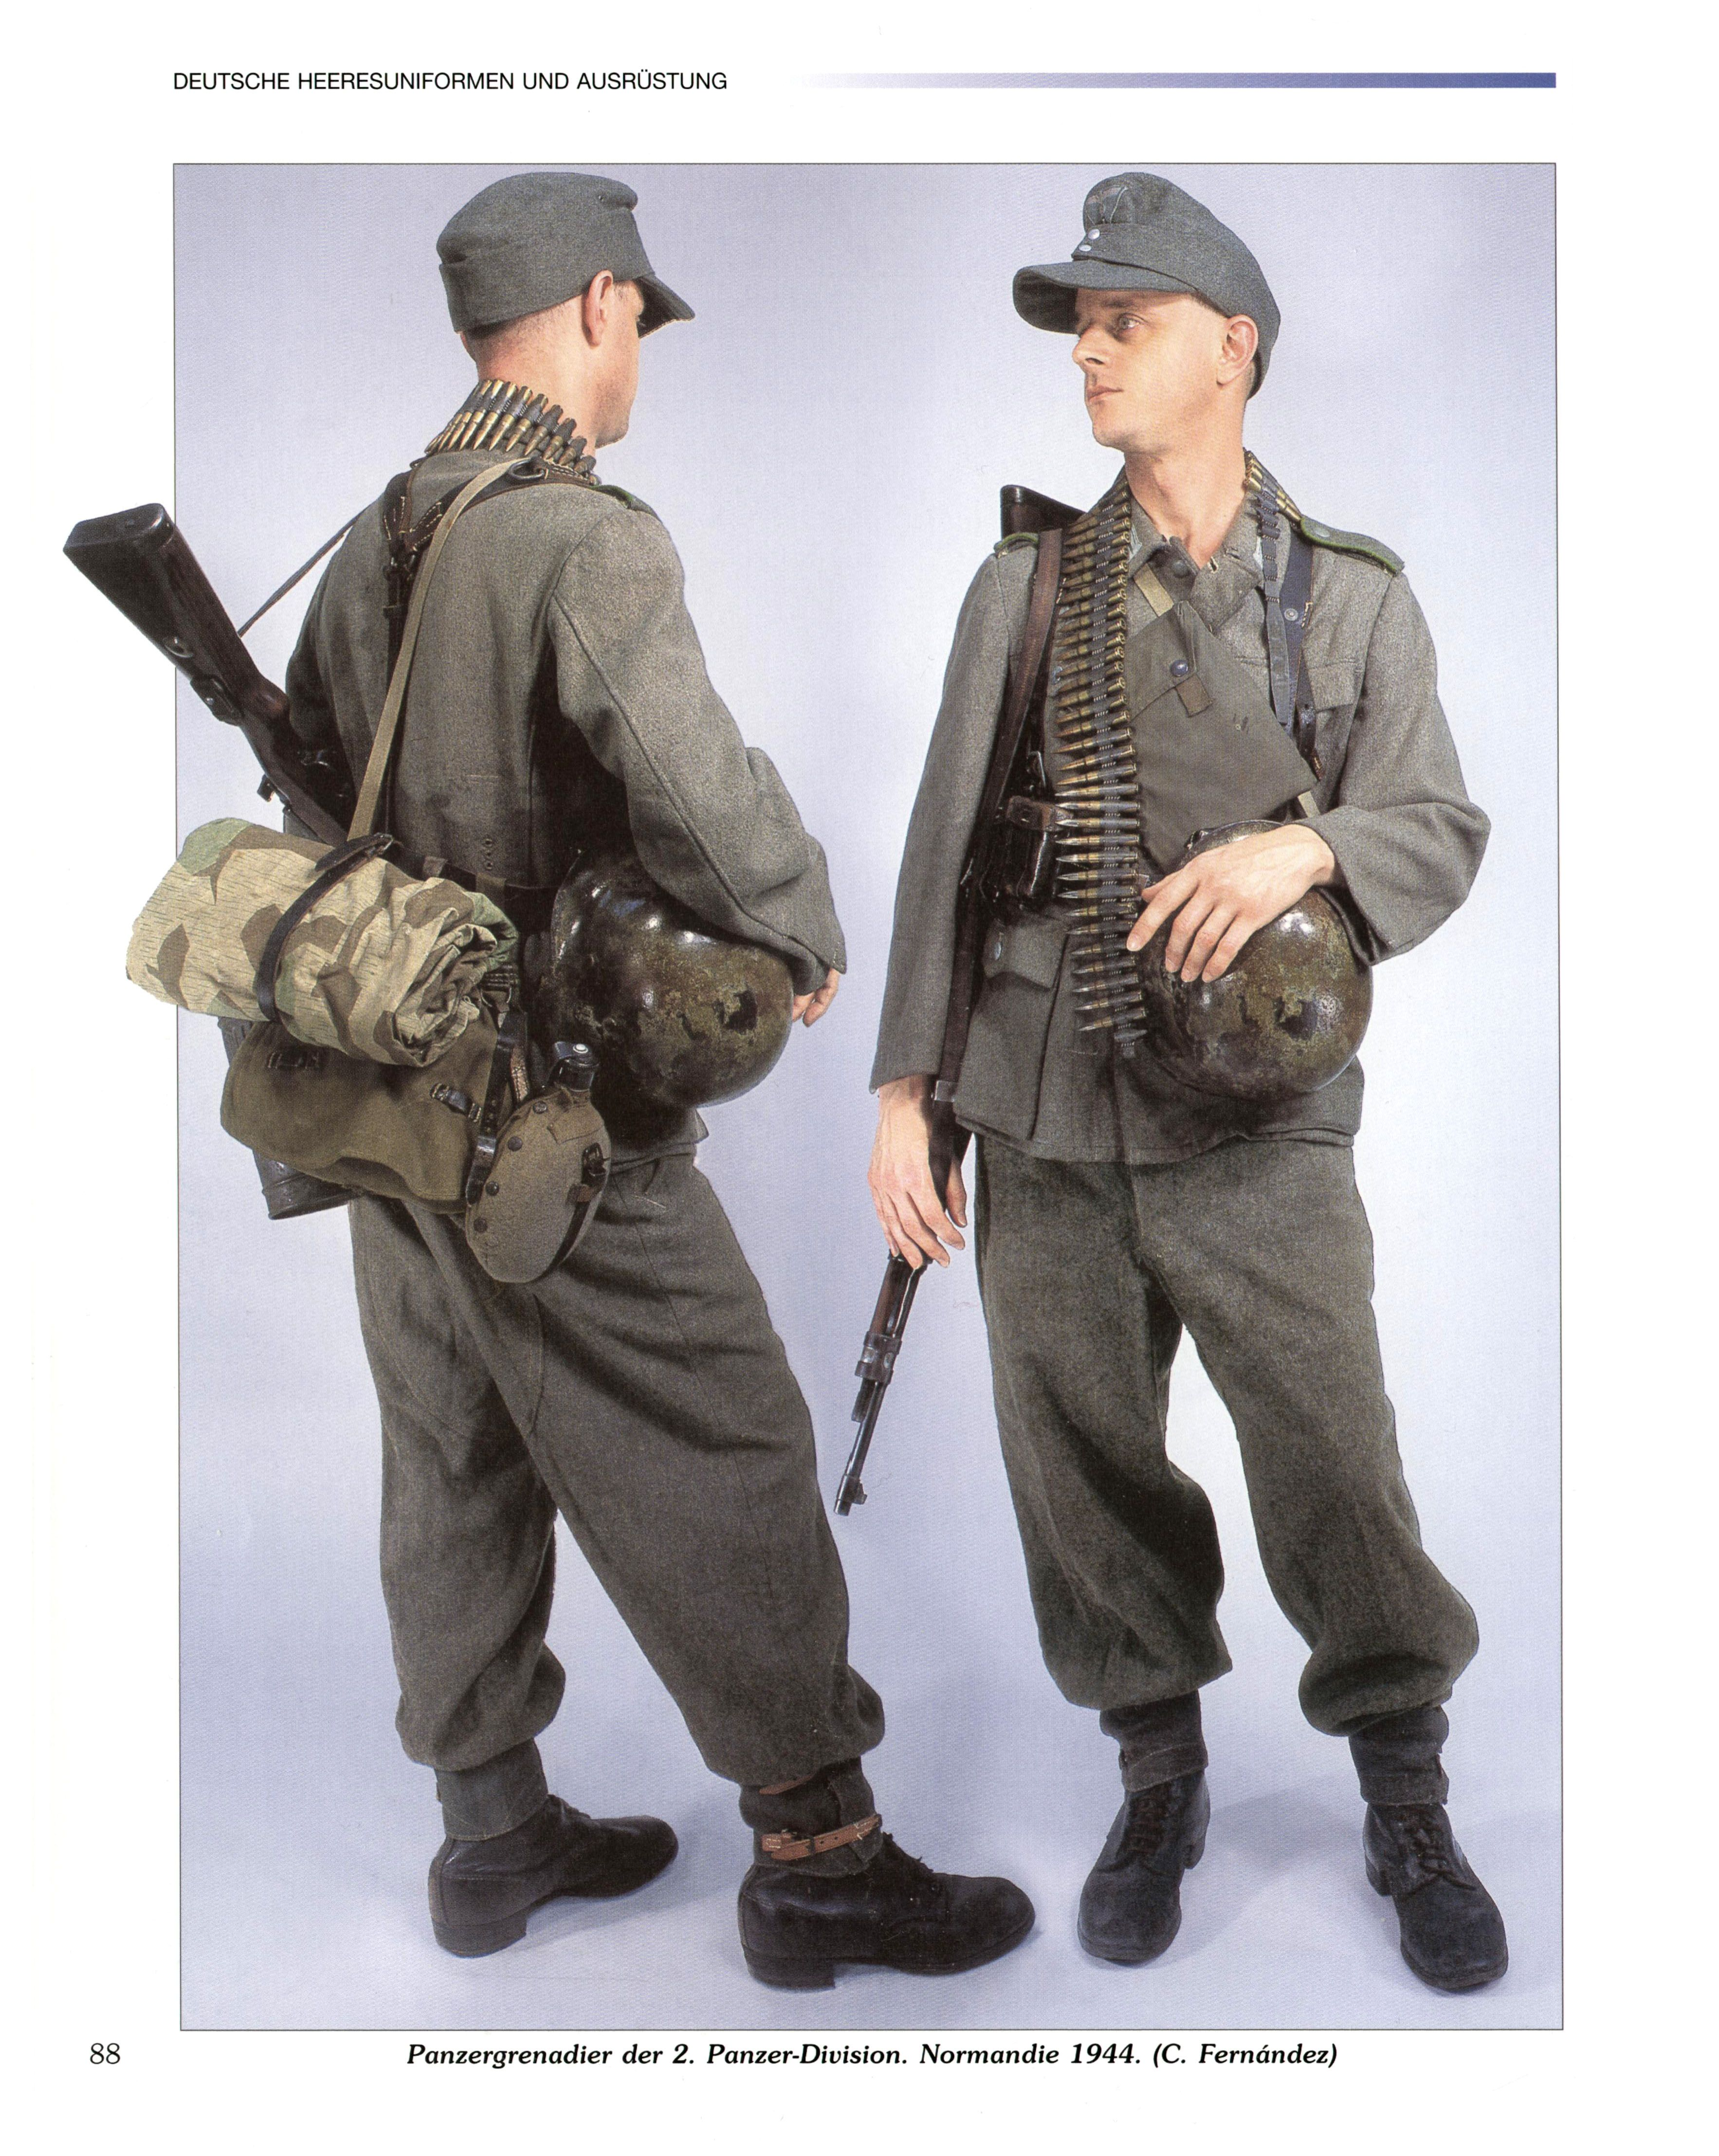 wehrmacht uniform 3 the iii reich pinterest ww2